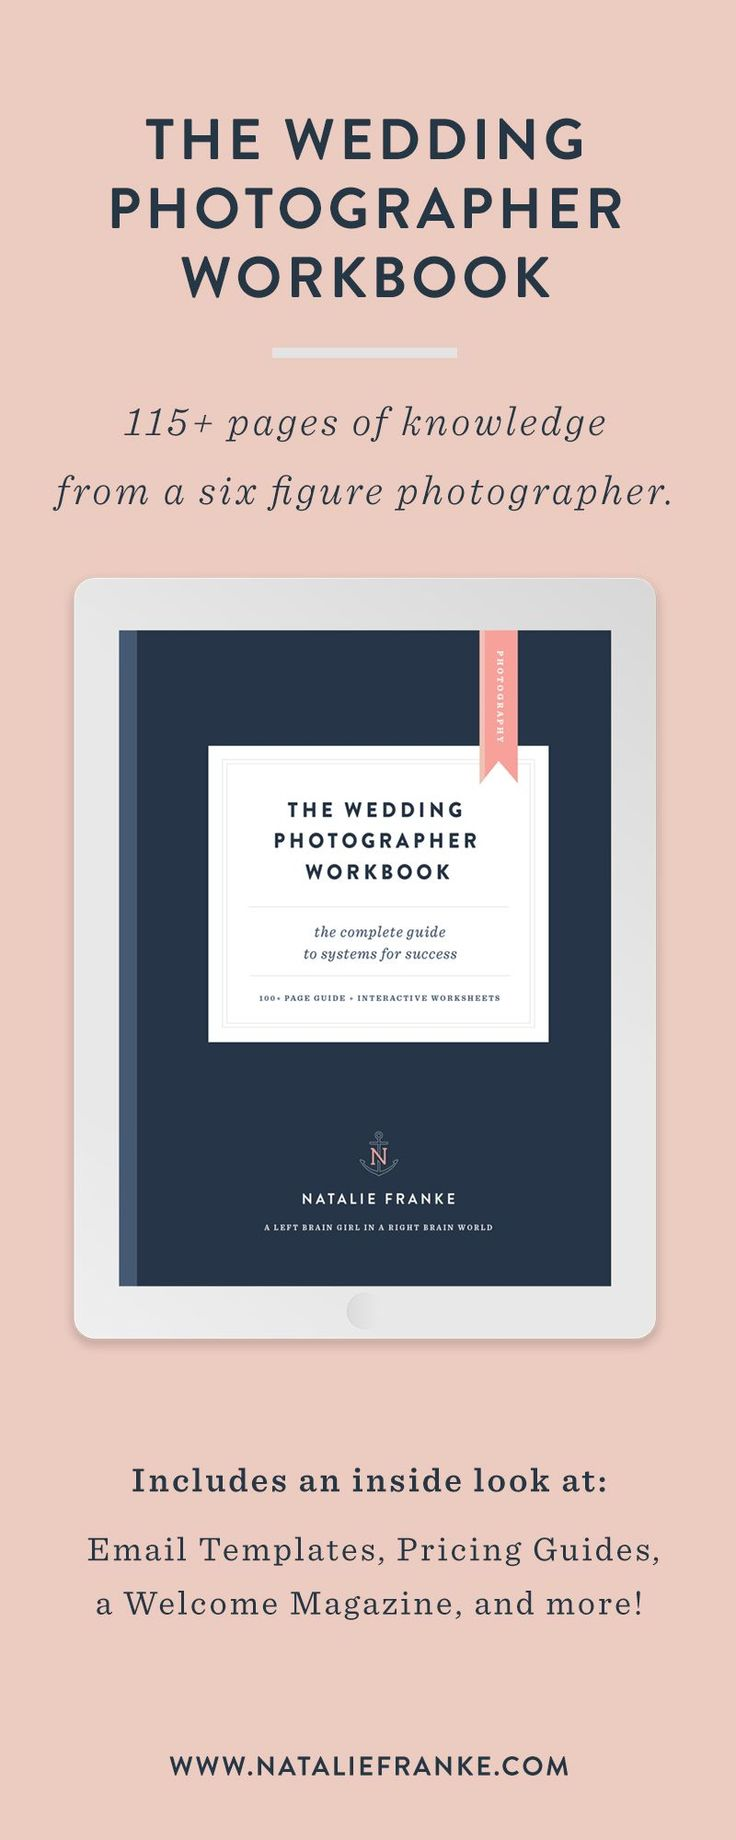 Wedding Photographer's Email Templates, Pricing Guides, and client welcome magazine for under $300.    In this workbook, I'll guide you through the process to build a wedding photography business from the ground up. If you're ready to book more weddings, serve your clients well, and be profitable doing work you love, then you're in the right place!